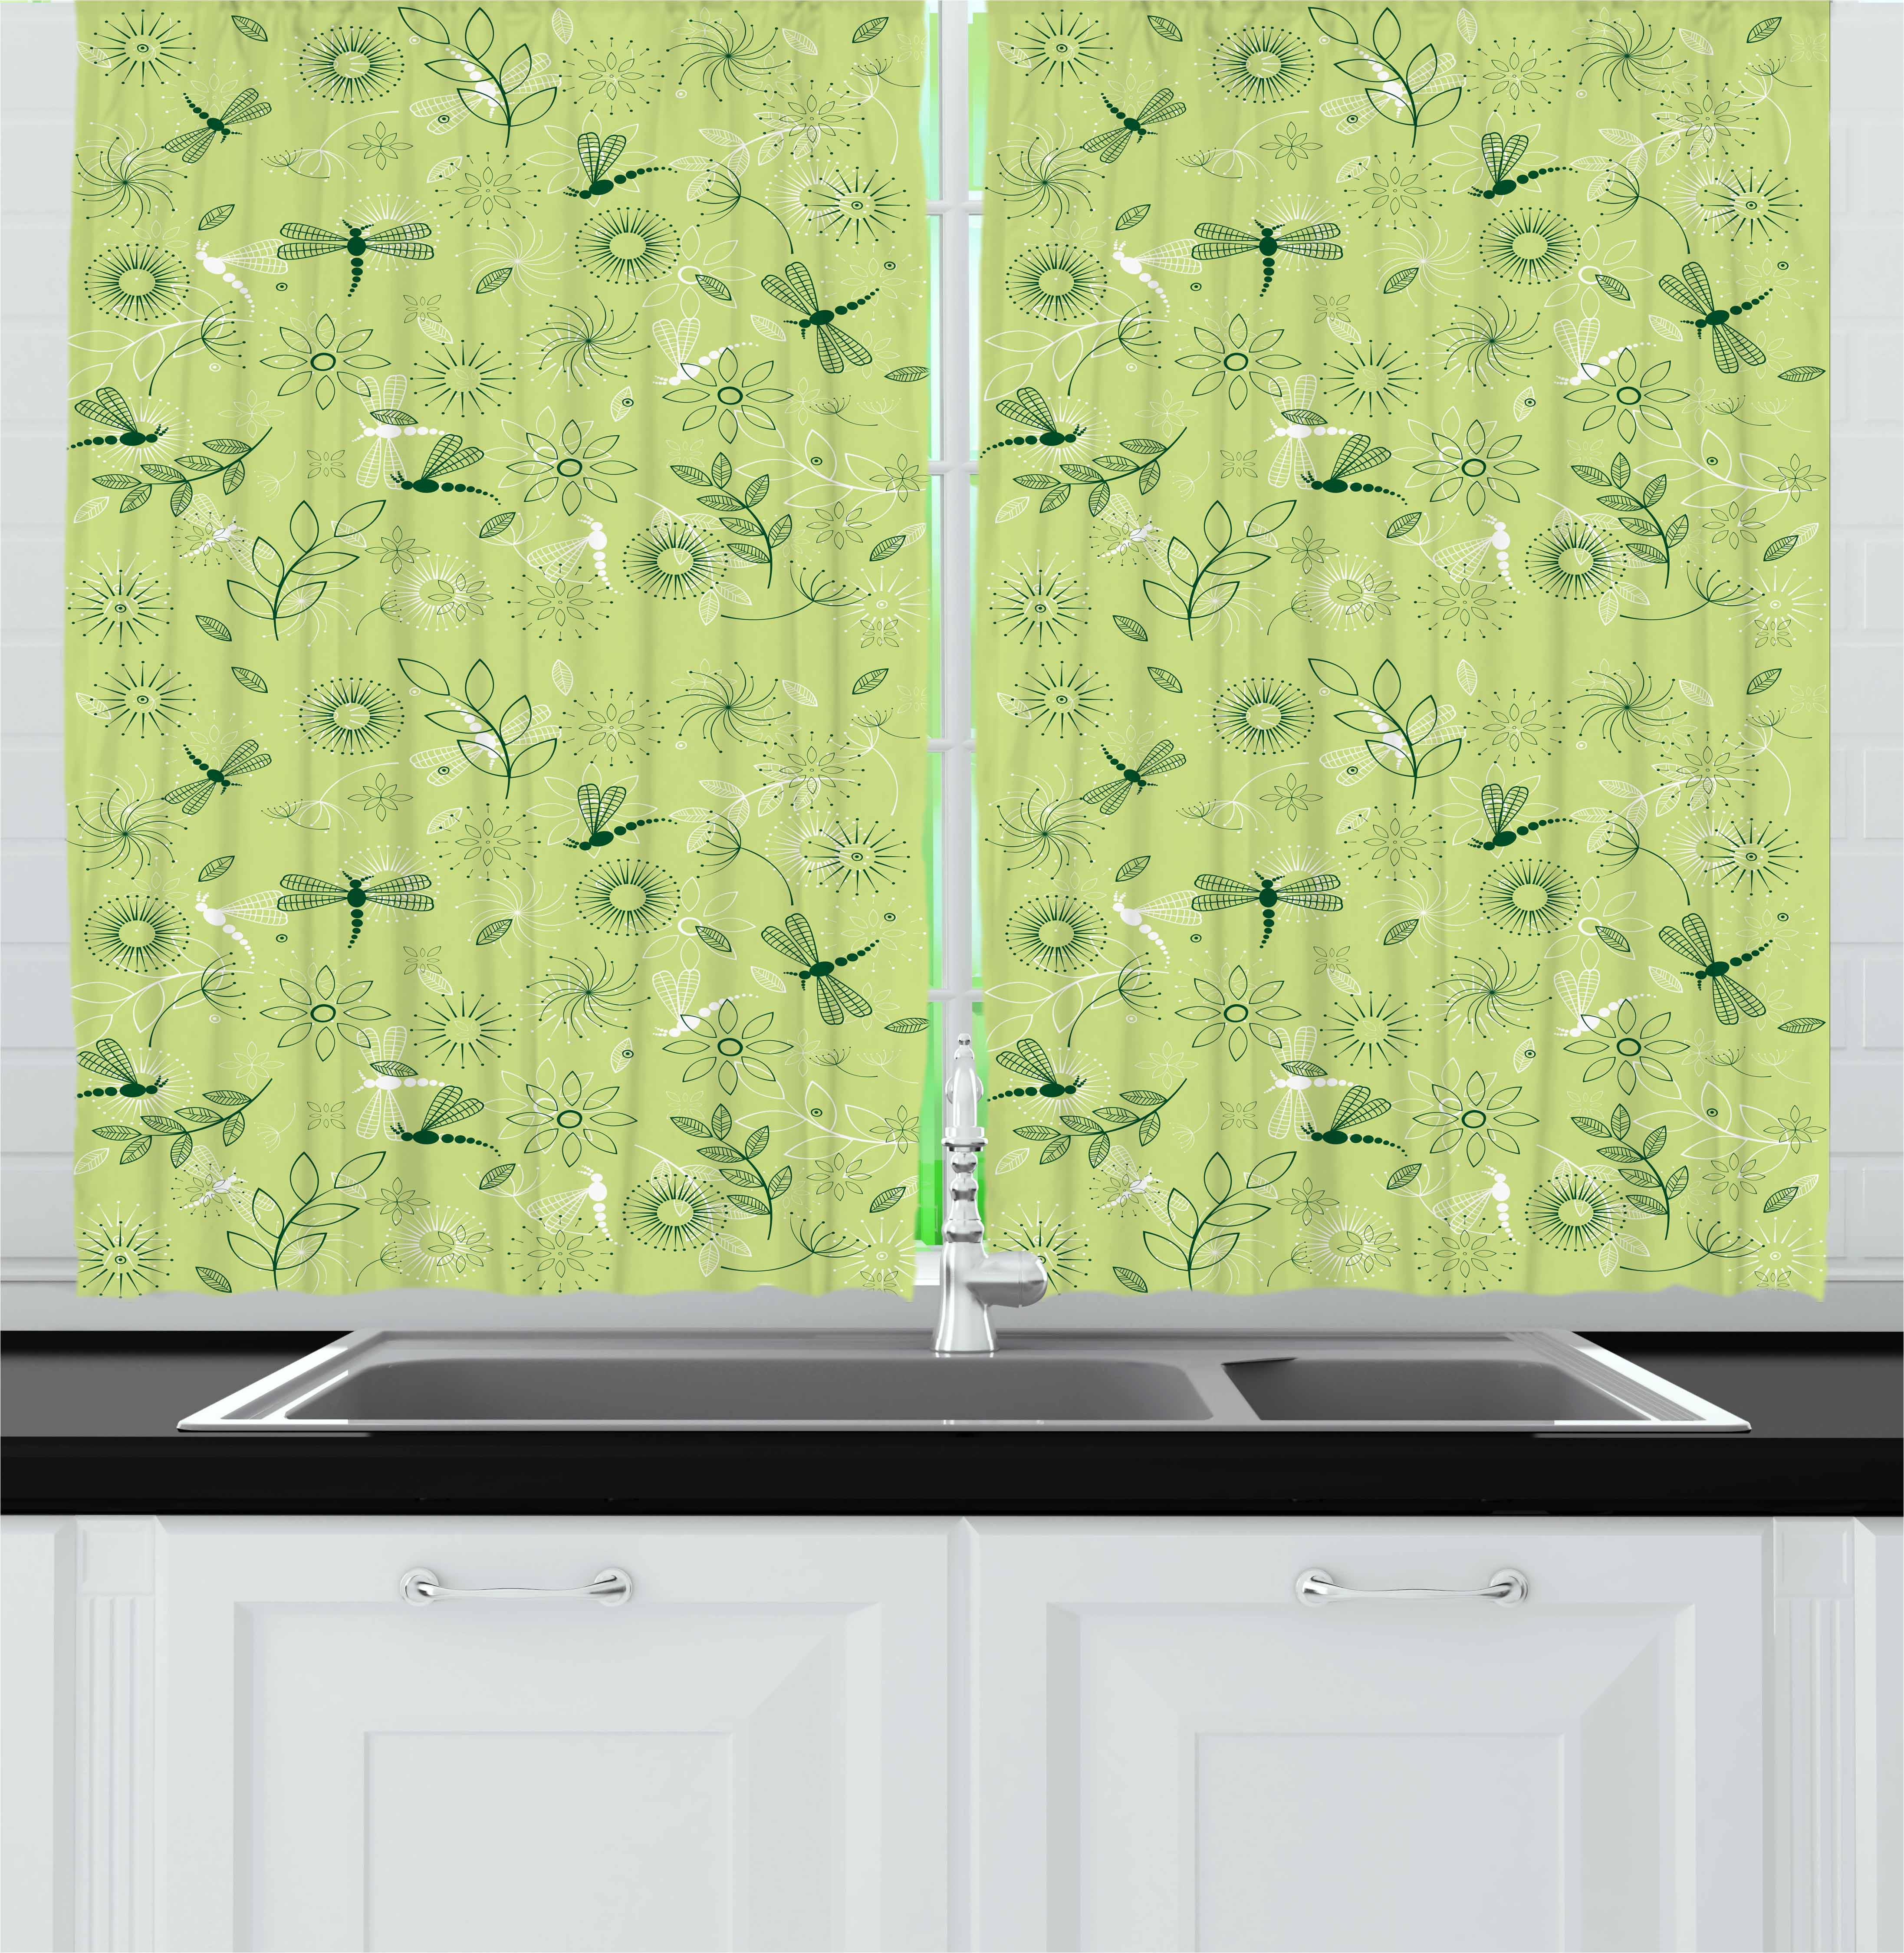 Dragonfly Curtains 2 Panels Set, Flowers and Dragonflies Kids Boys Spring Season Inspiration Image, Window Drapes for Living Room Bedroom, 55W X 39L Inches, Pistachio and Hunter Green, by Ambesonne